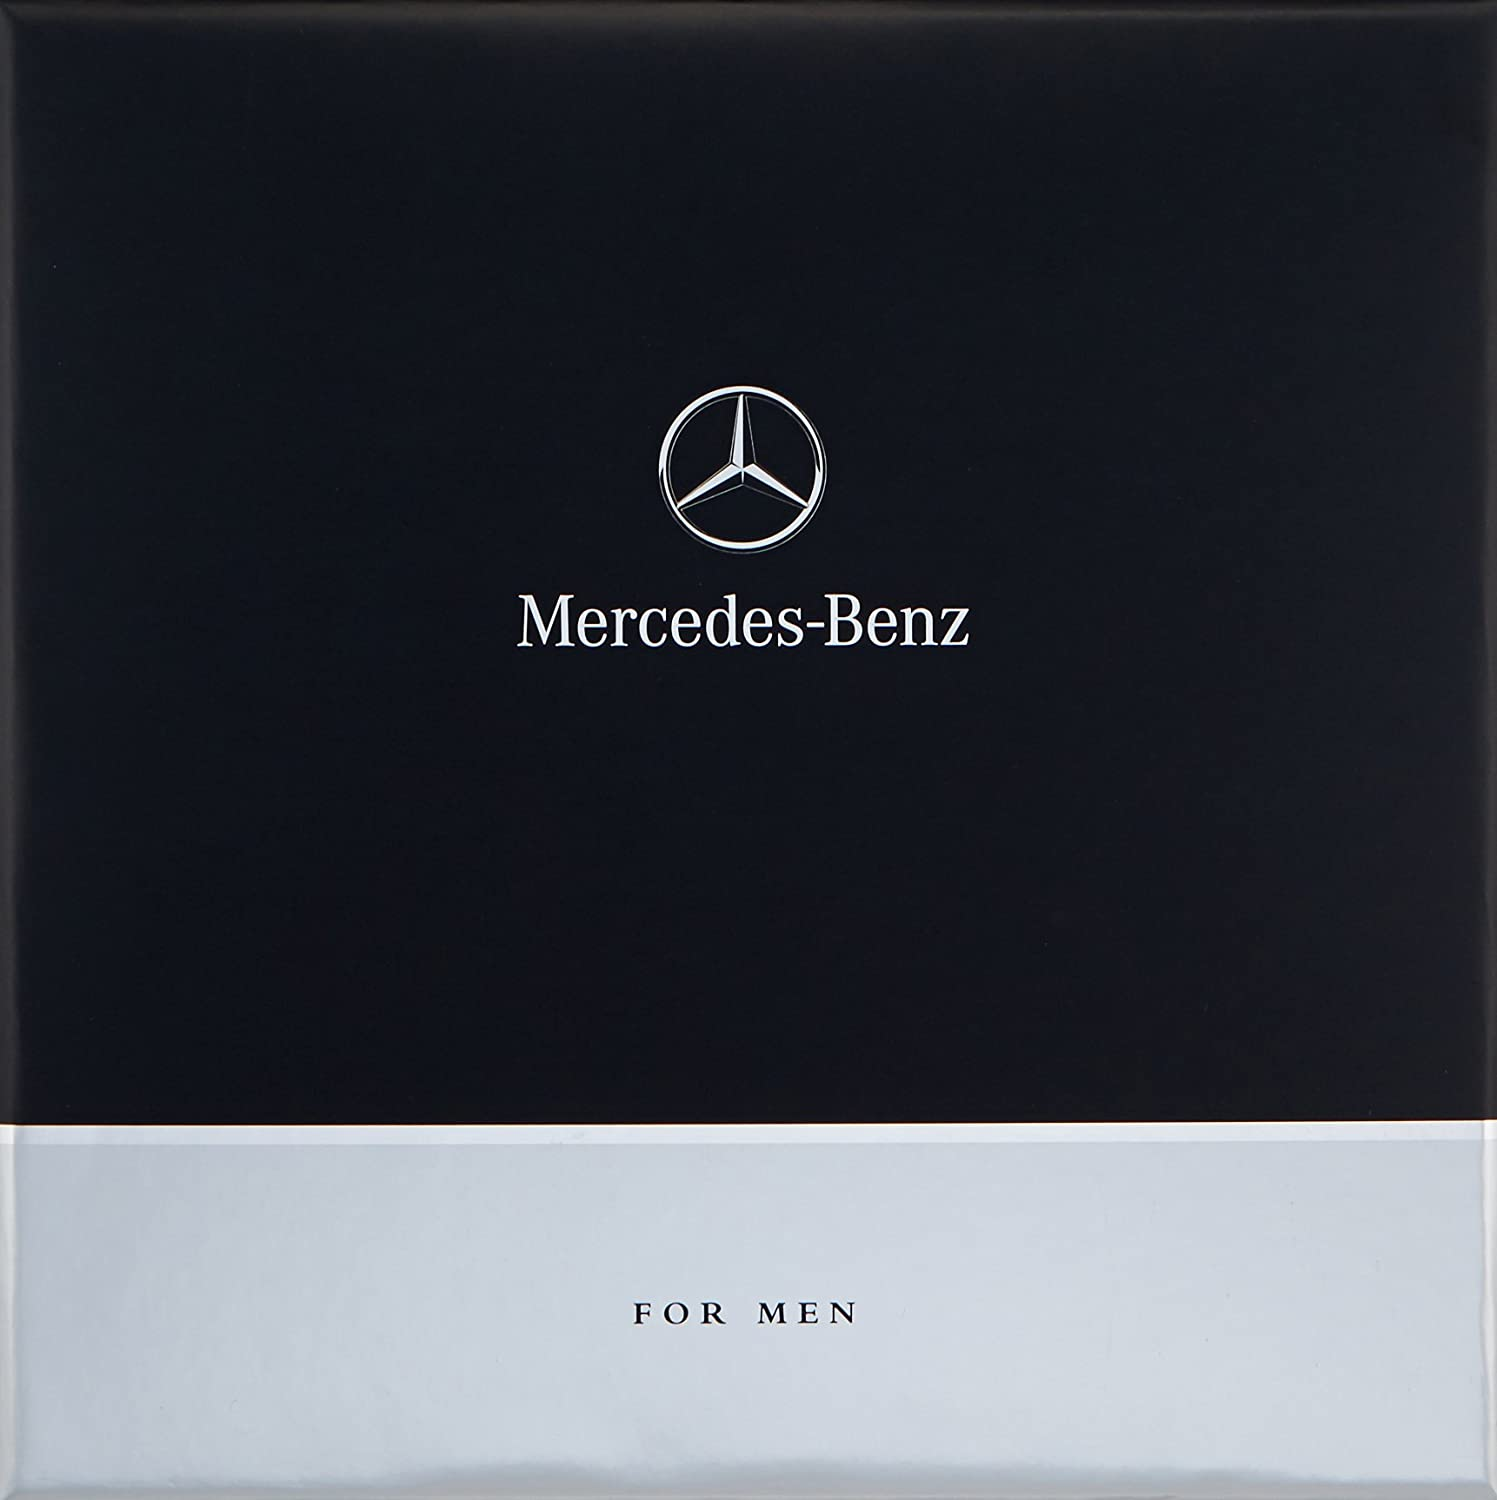 class deposit credit card a burton thank on for benz you sale staffordshire doors trent mercedes taken in car used